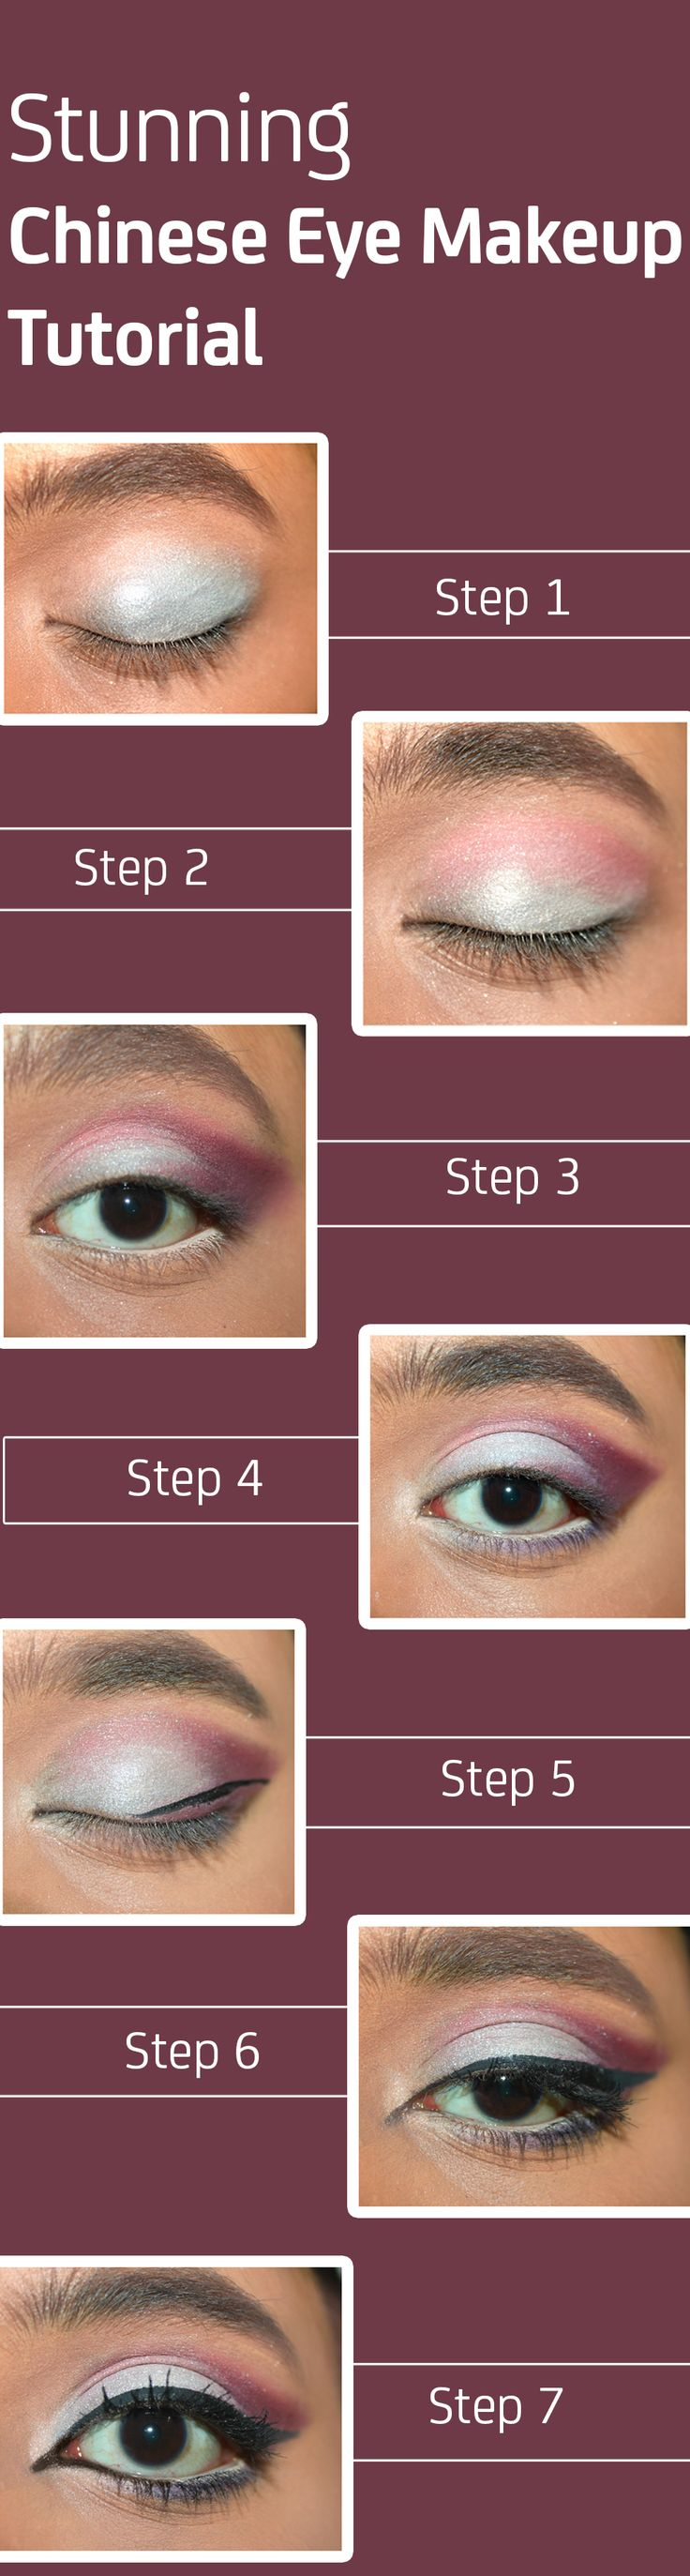 Stunning Chinese Eye Makeup – Tutorial Step By Step With Images